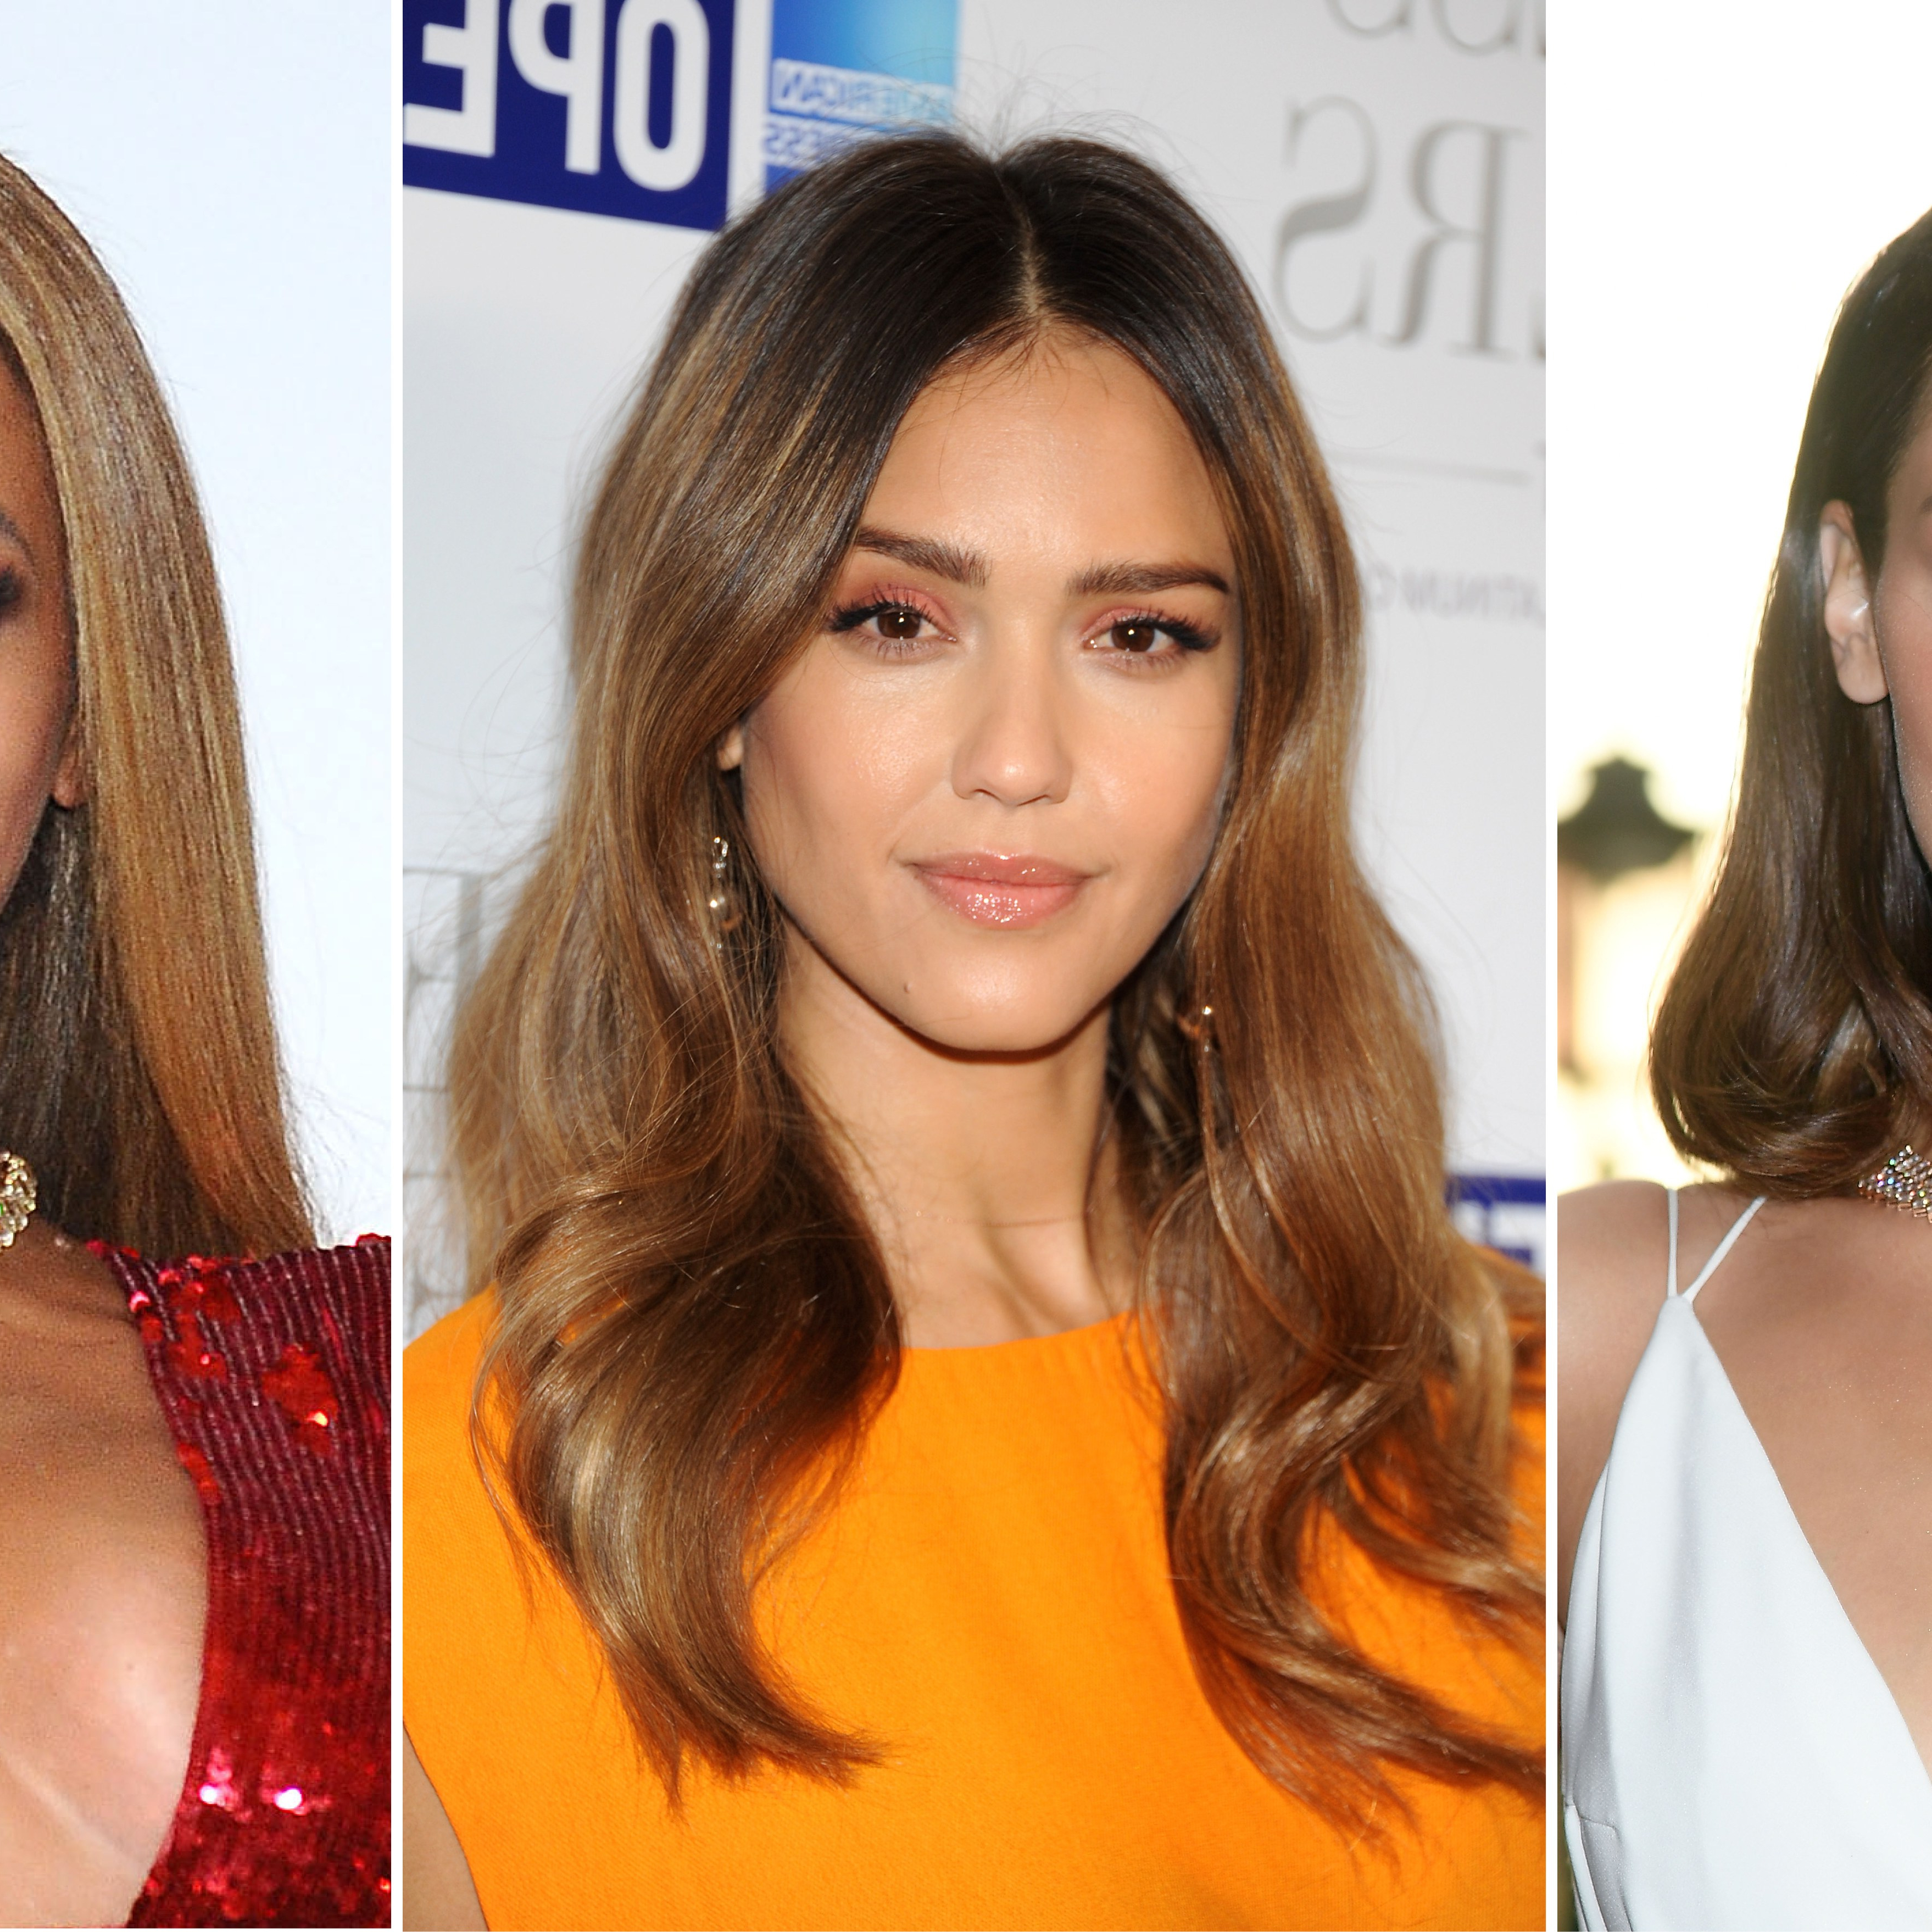 Favorite Low Key Curtain Bangs Hairstyles Throughout The 10 Most Flattering Haircuts For Oval Faces (View 16 of 20)